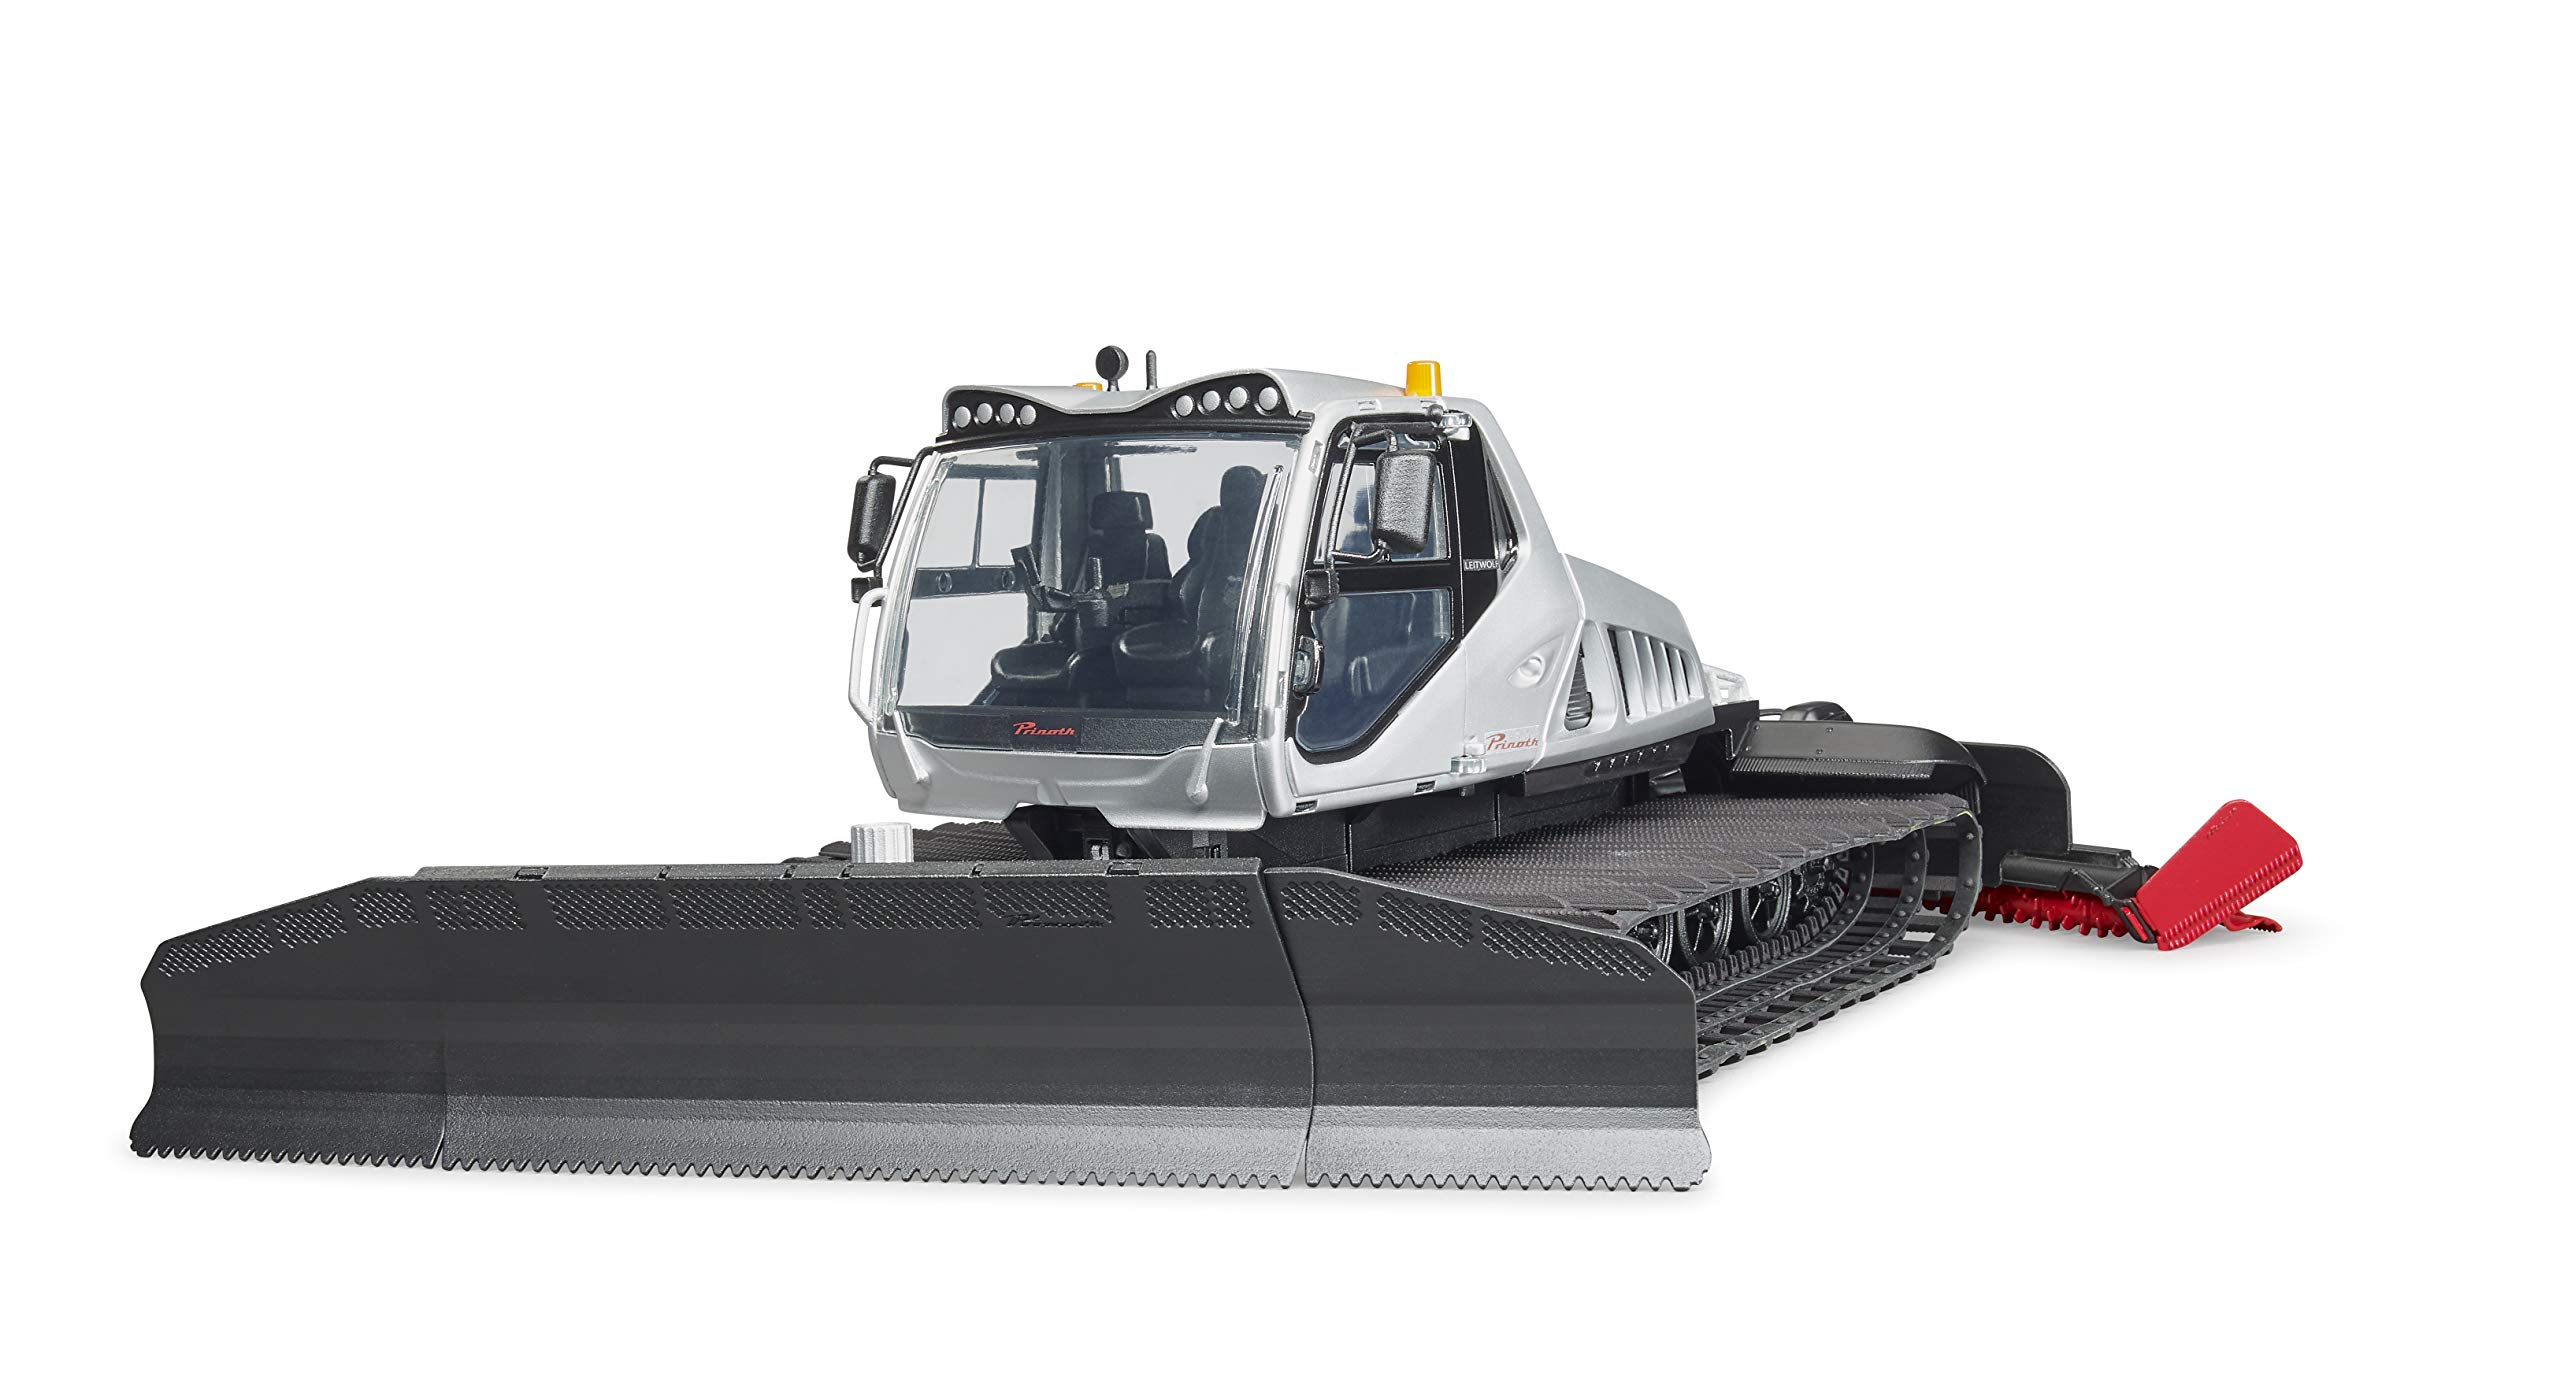 Bruder Toys Prinoth Snow Groomer Leitwolf by Bruder Toys (Image #2)